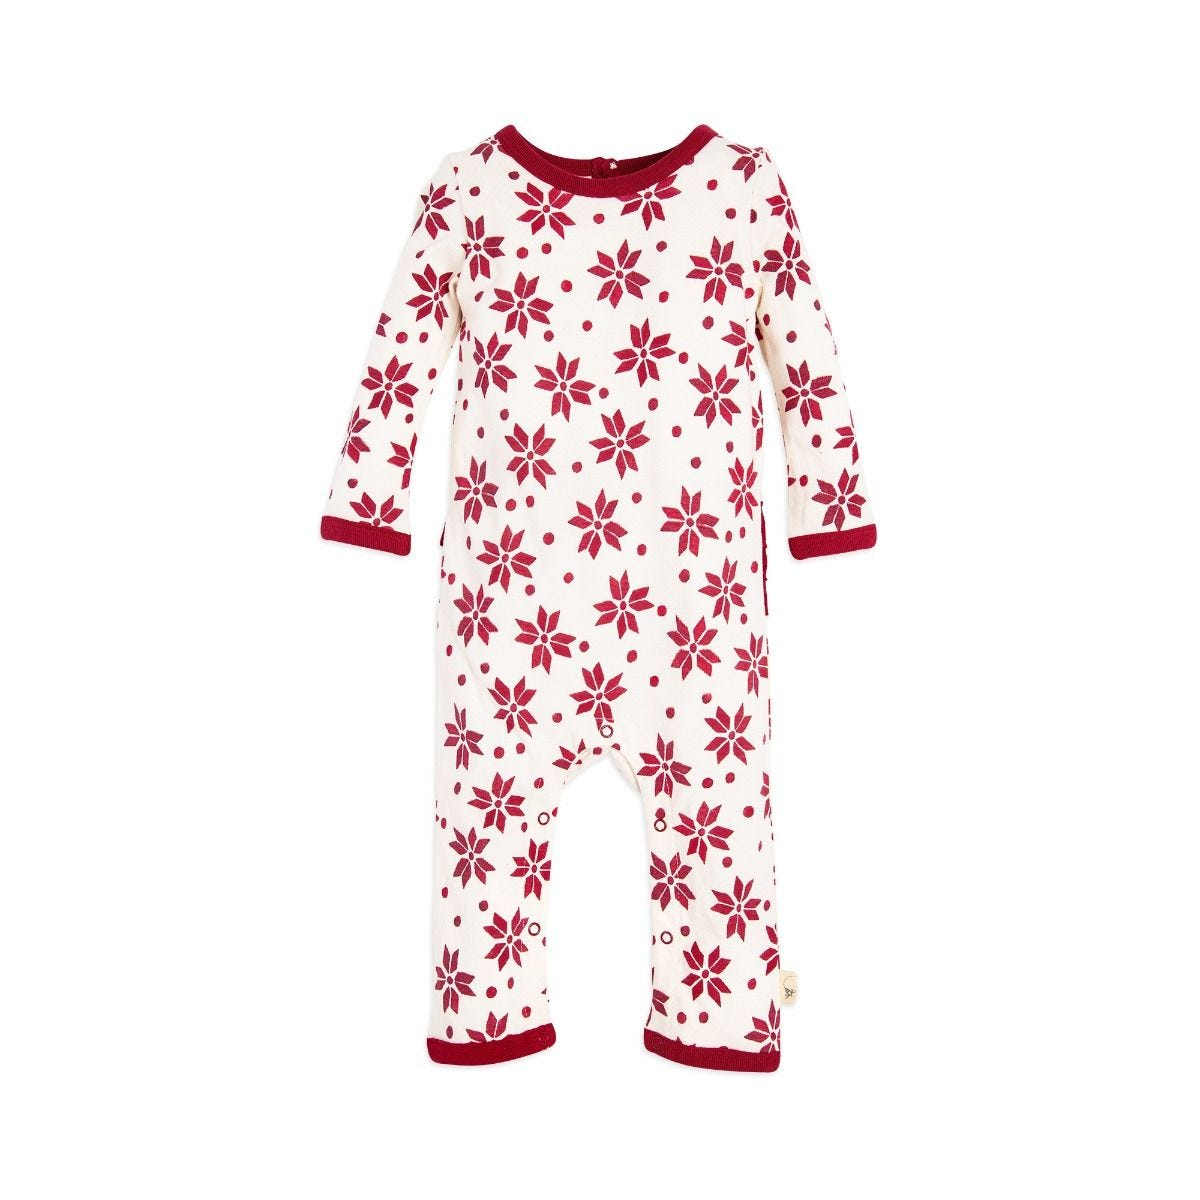 4d72ea6f1 Snowflake Ruffled Organic Baby Girls One Piece Jumpsuit